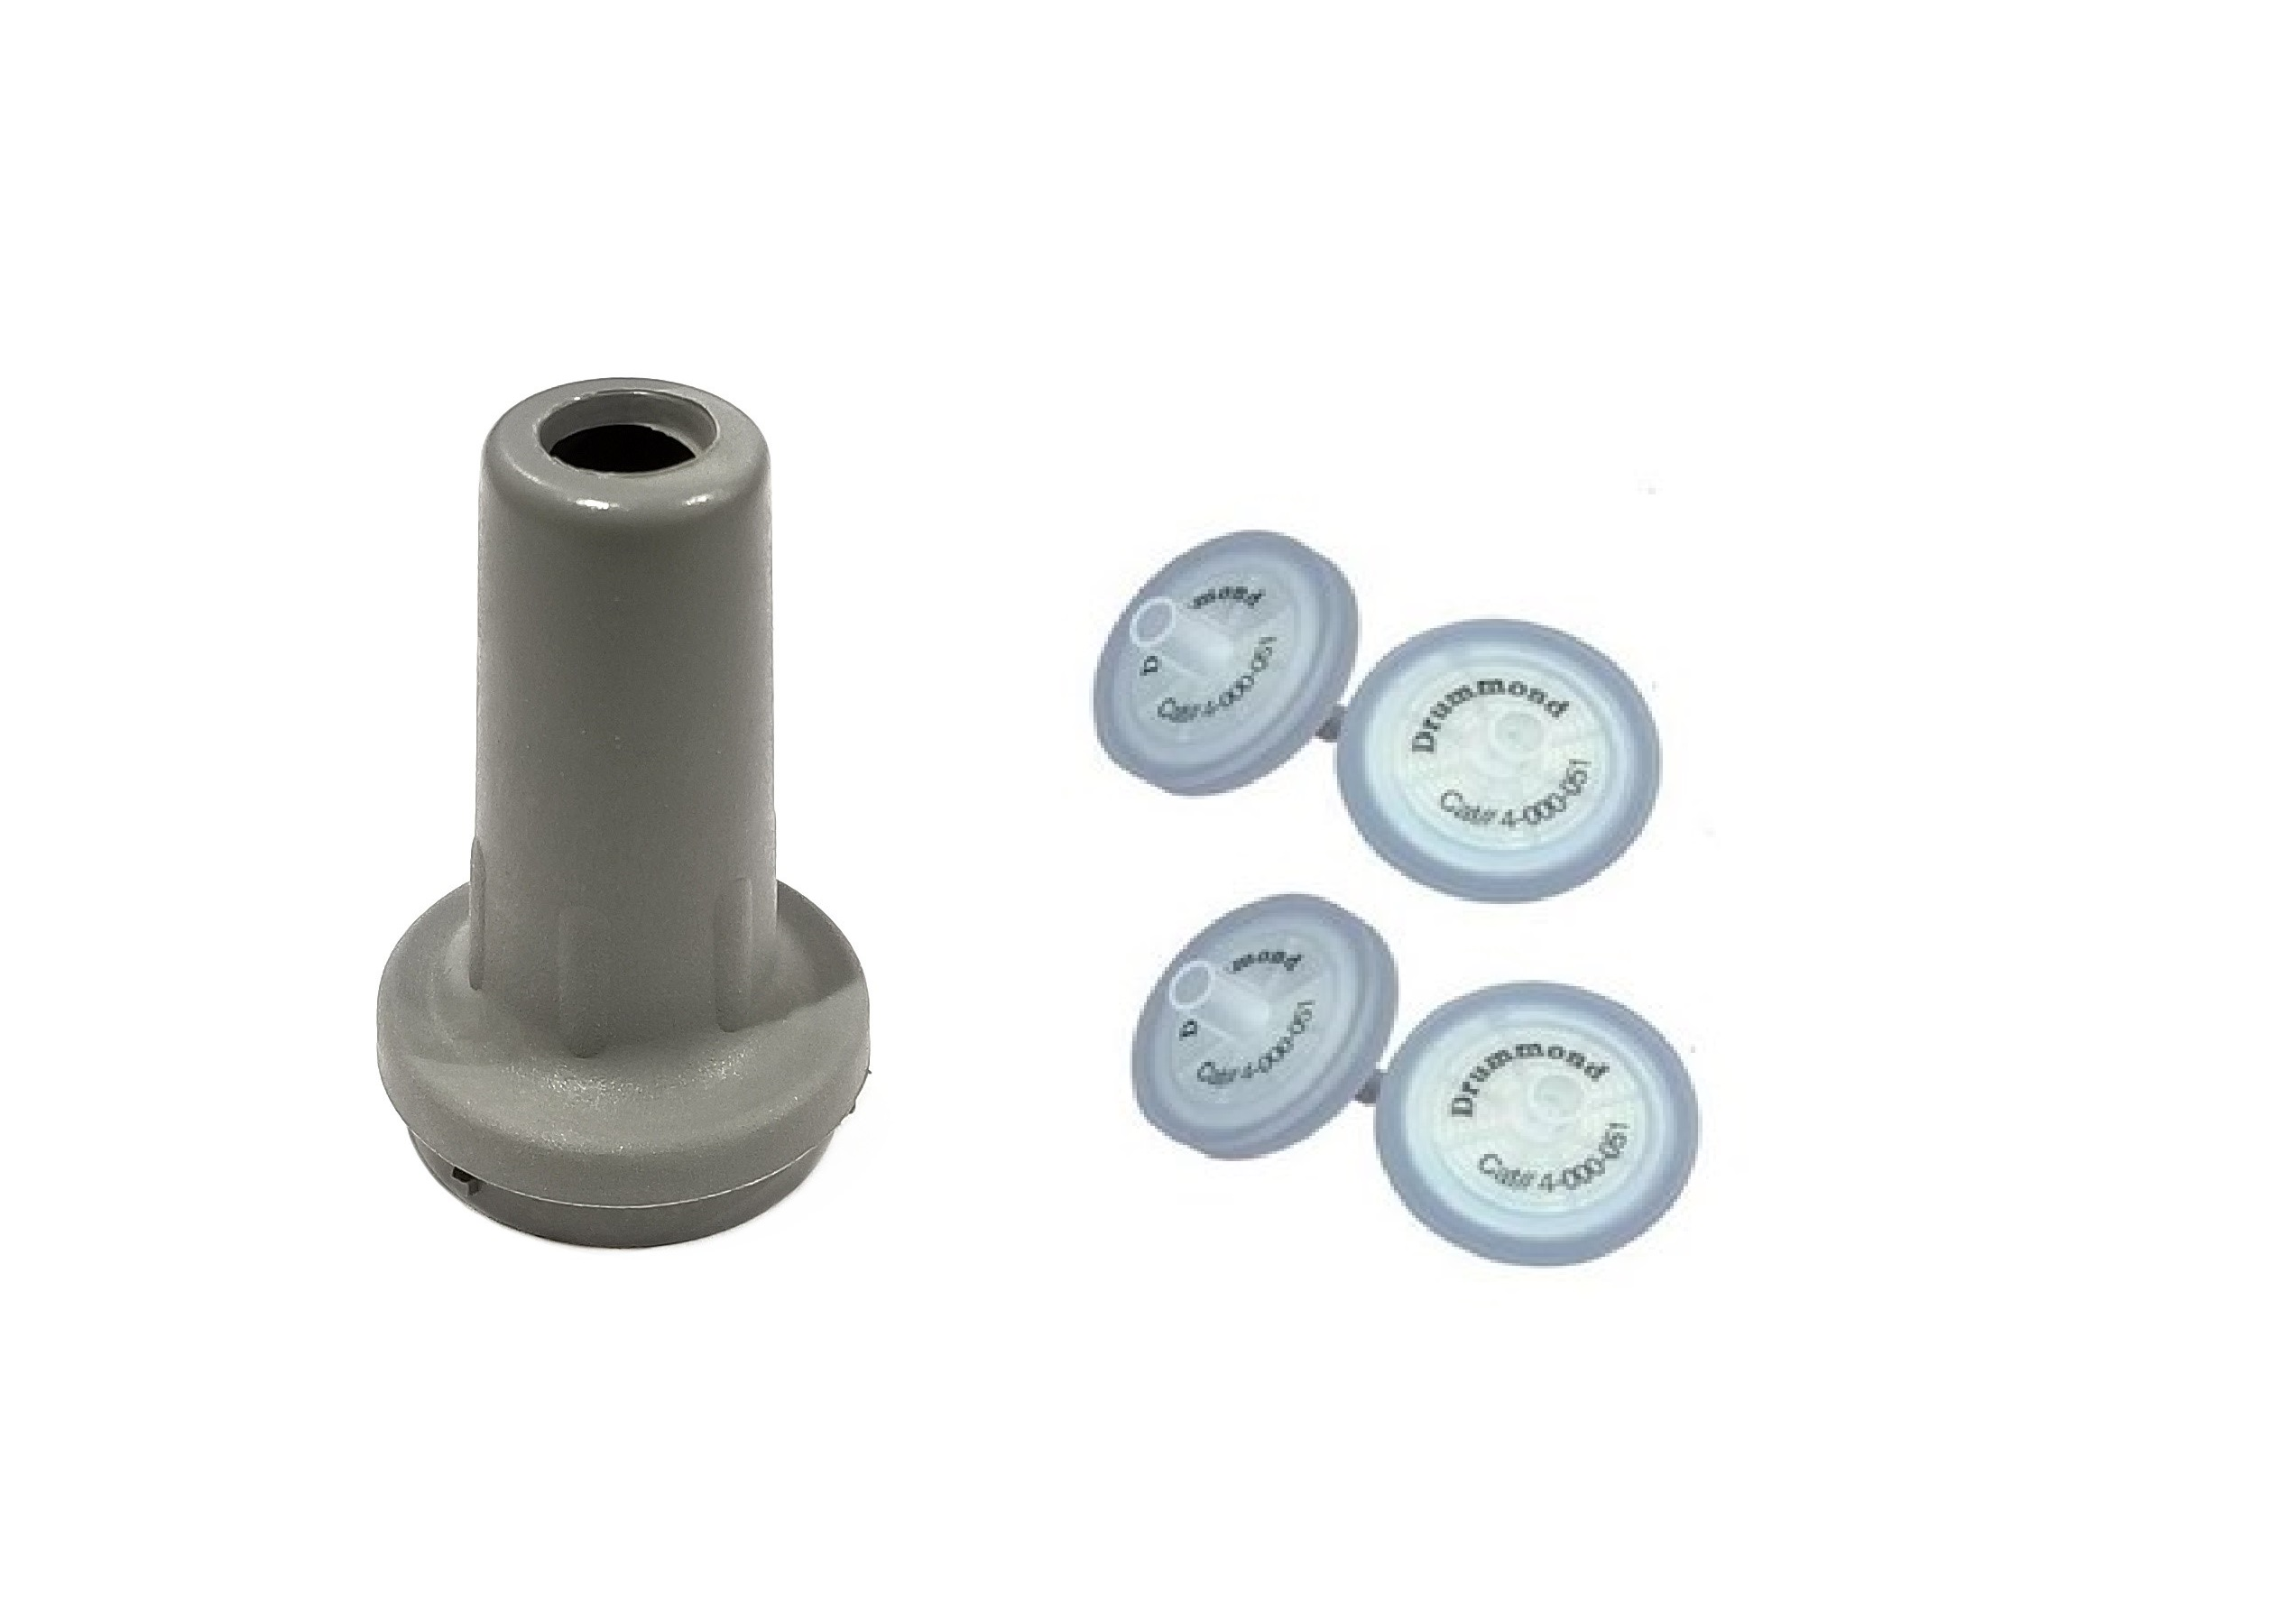 Drummond EZ Grip TC Gray Nosepiece Kit with 4 Filters (Drummond)